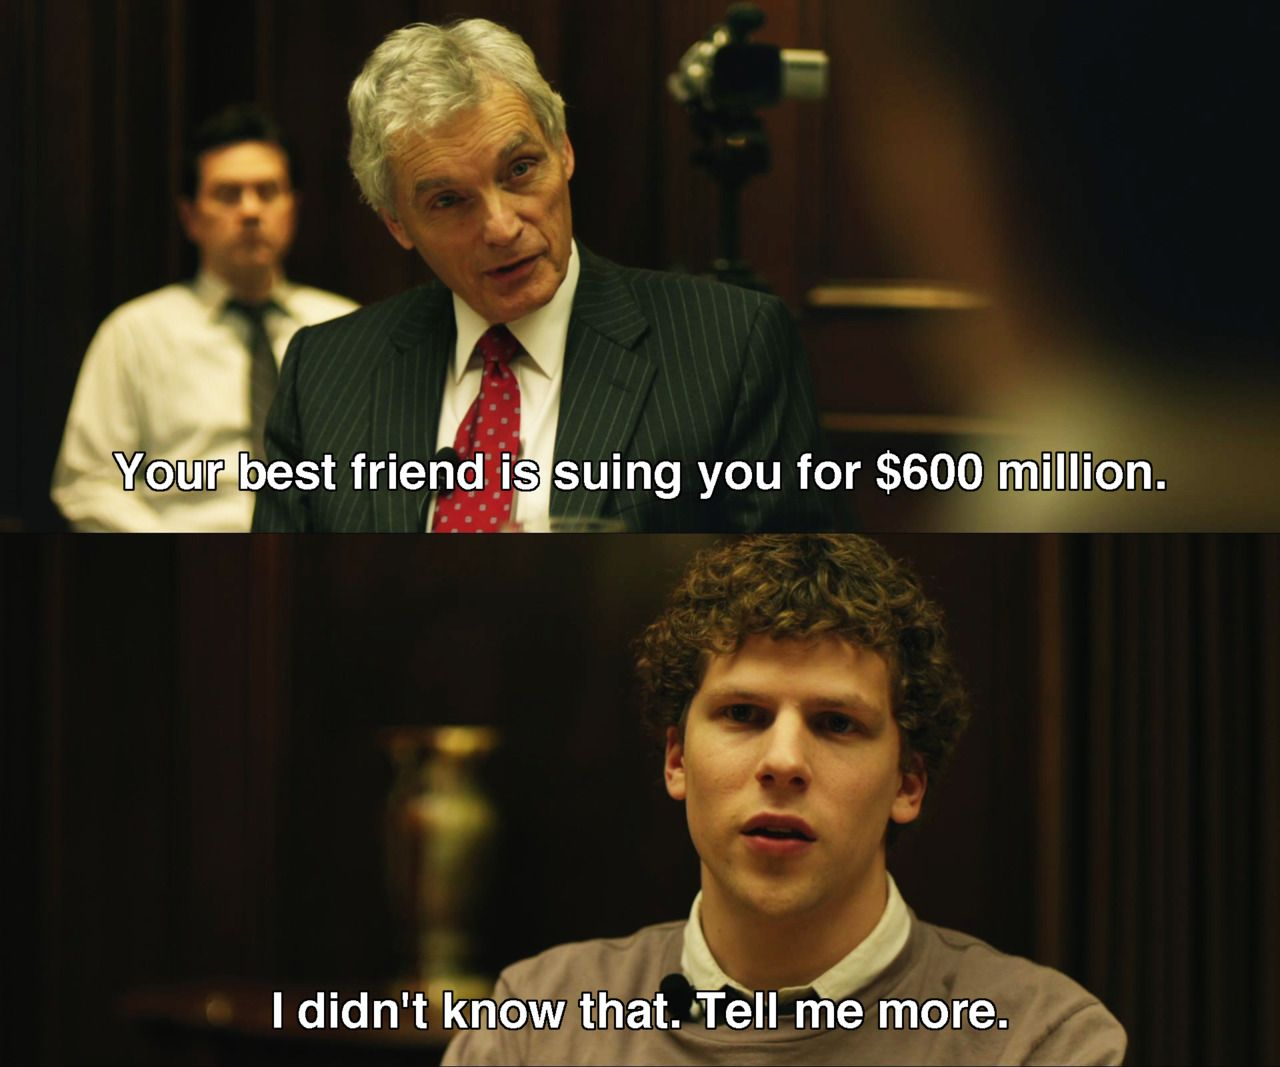 The Social Network 2010 Movie Quotes Social Network Movie Movie Lines Movies